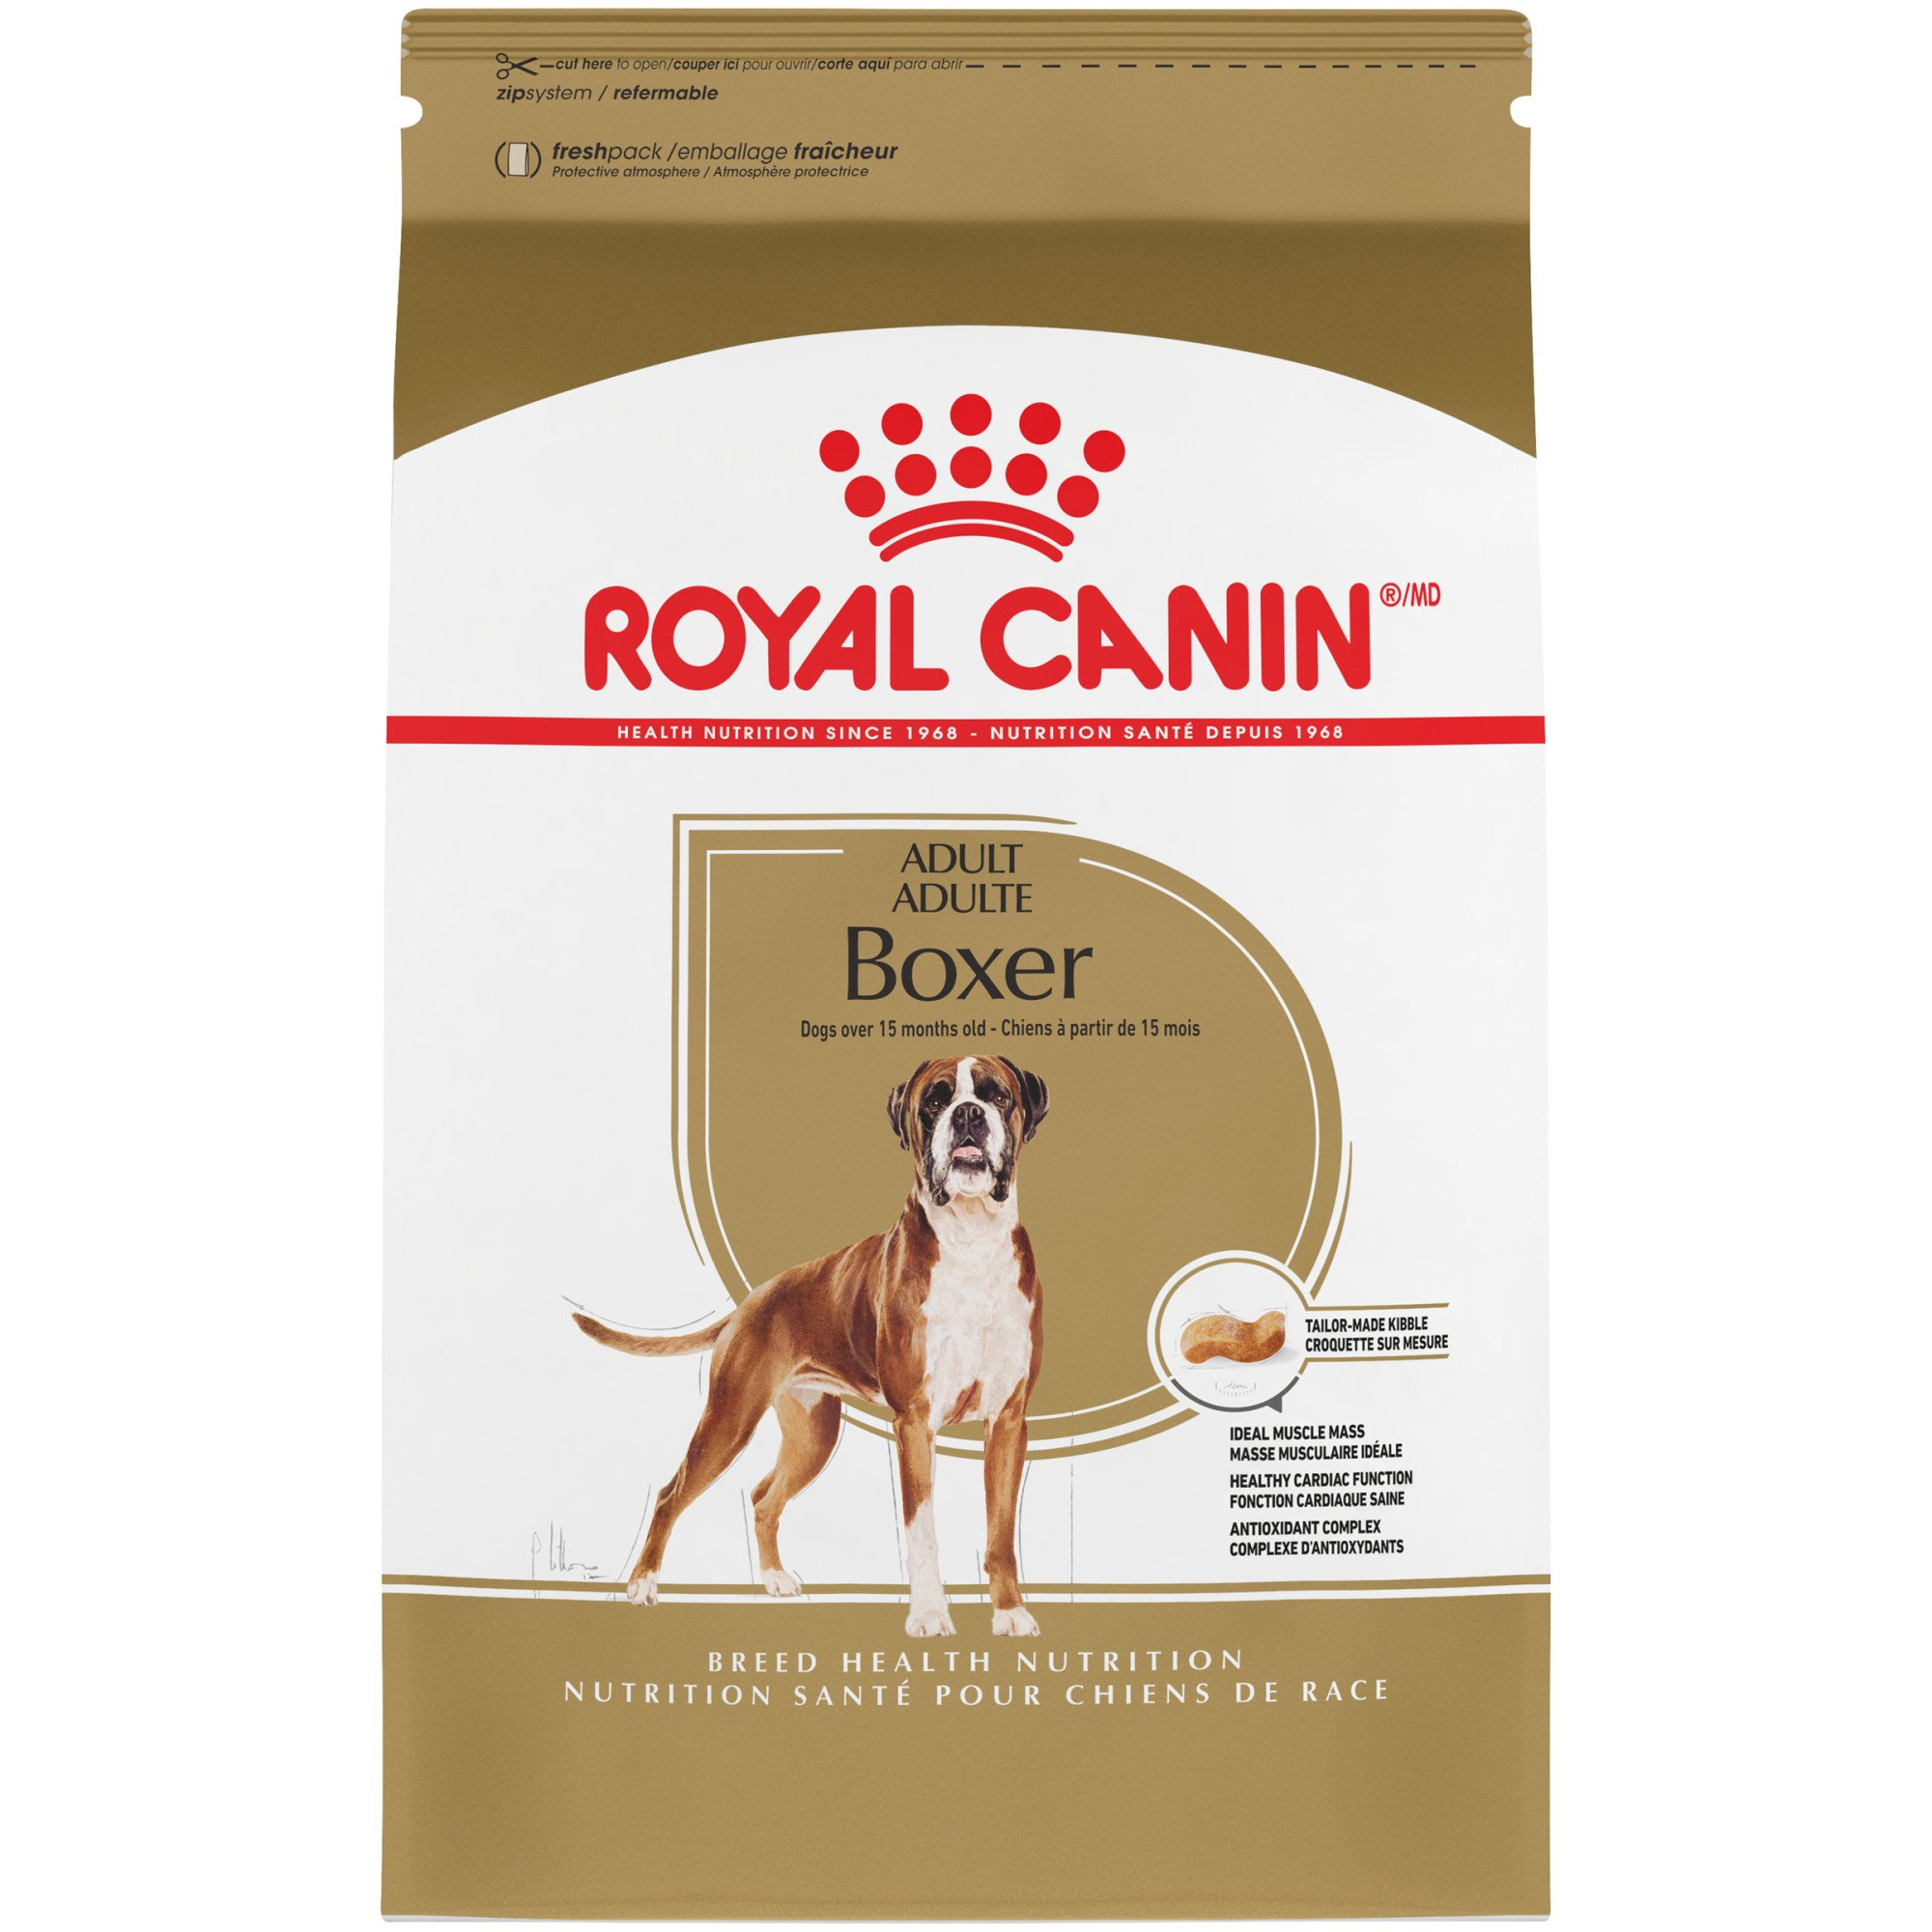 Permalink to Royal Canin Dog Food